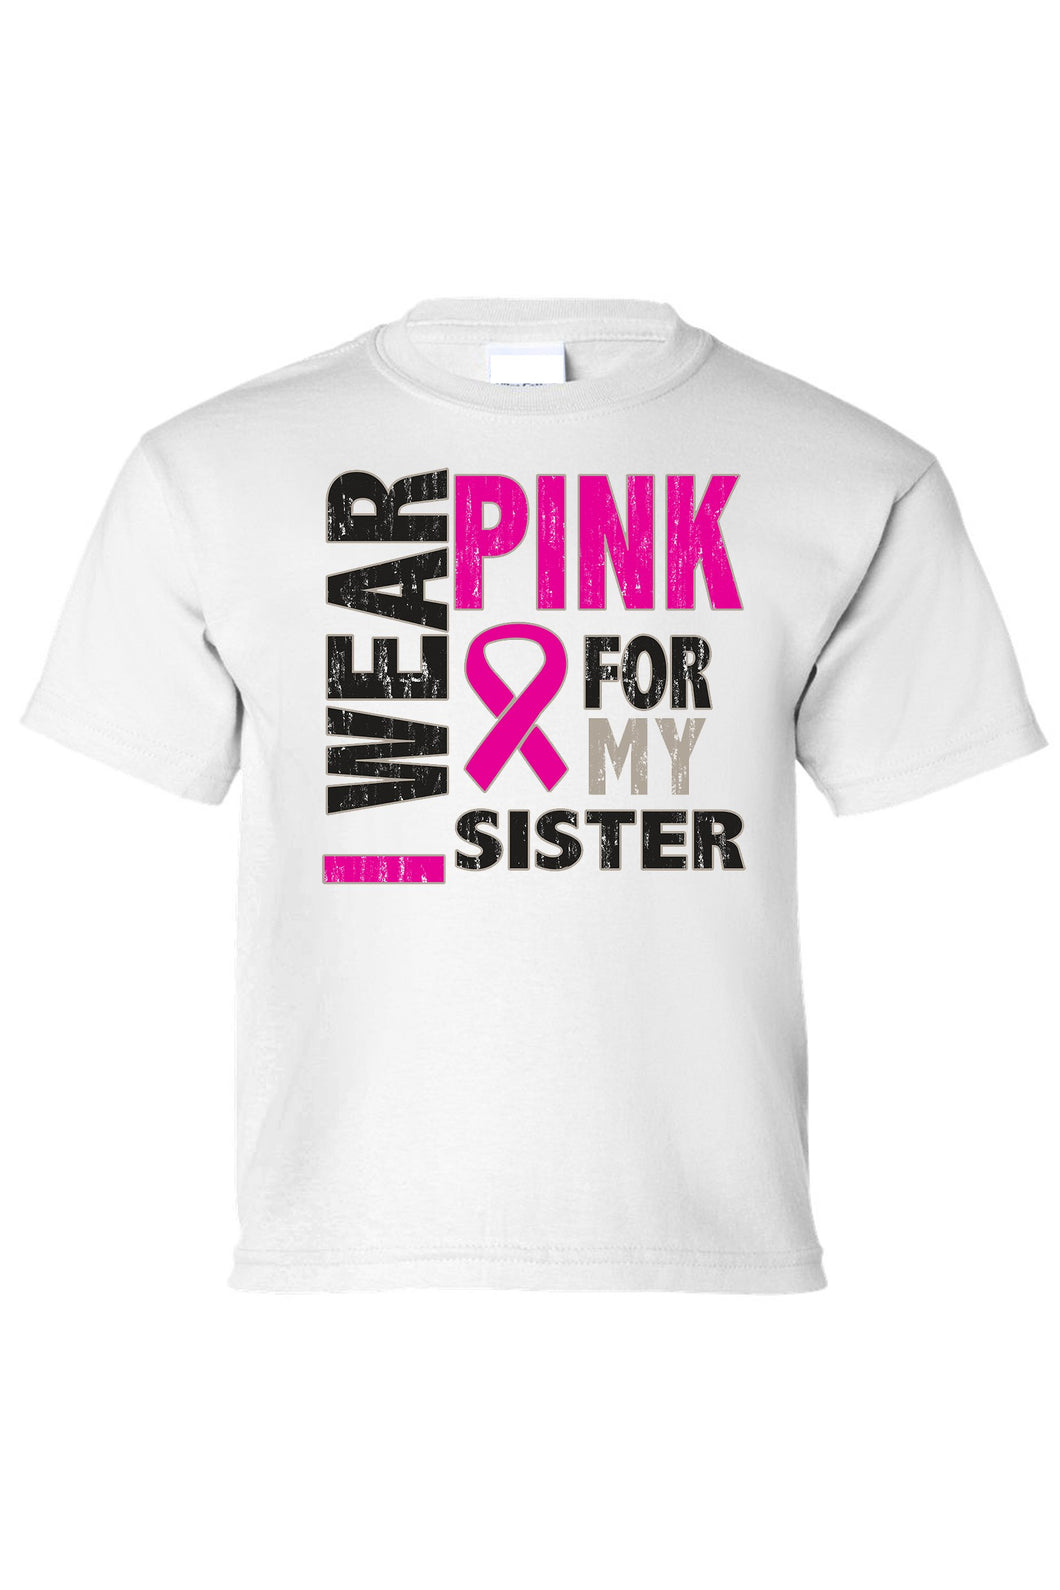 Kids Tee I Wear Pink For My Sister Short Sleeve